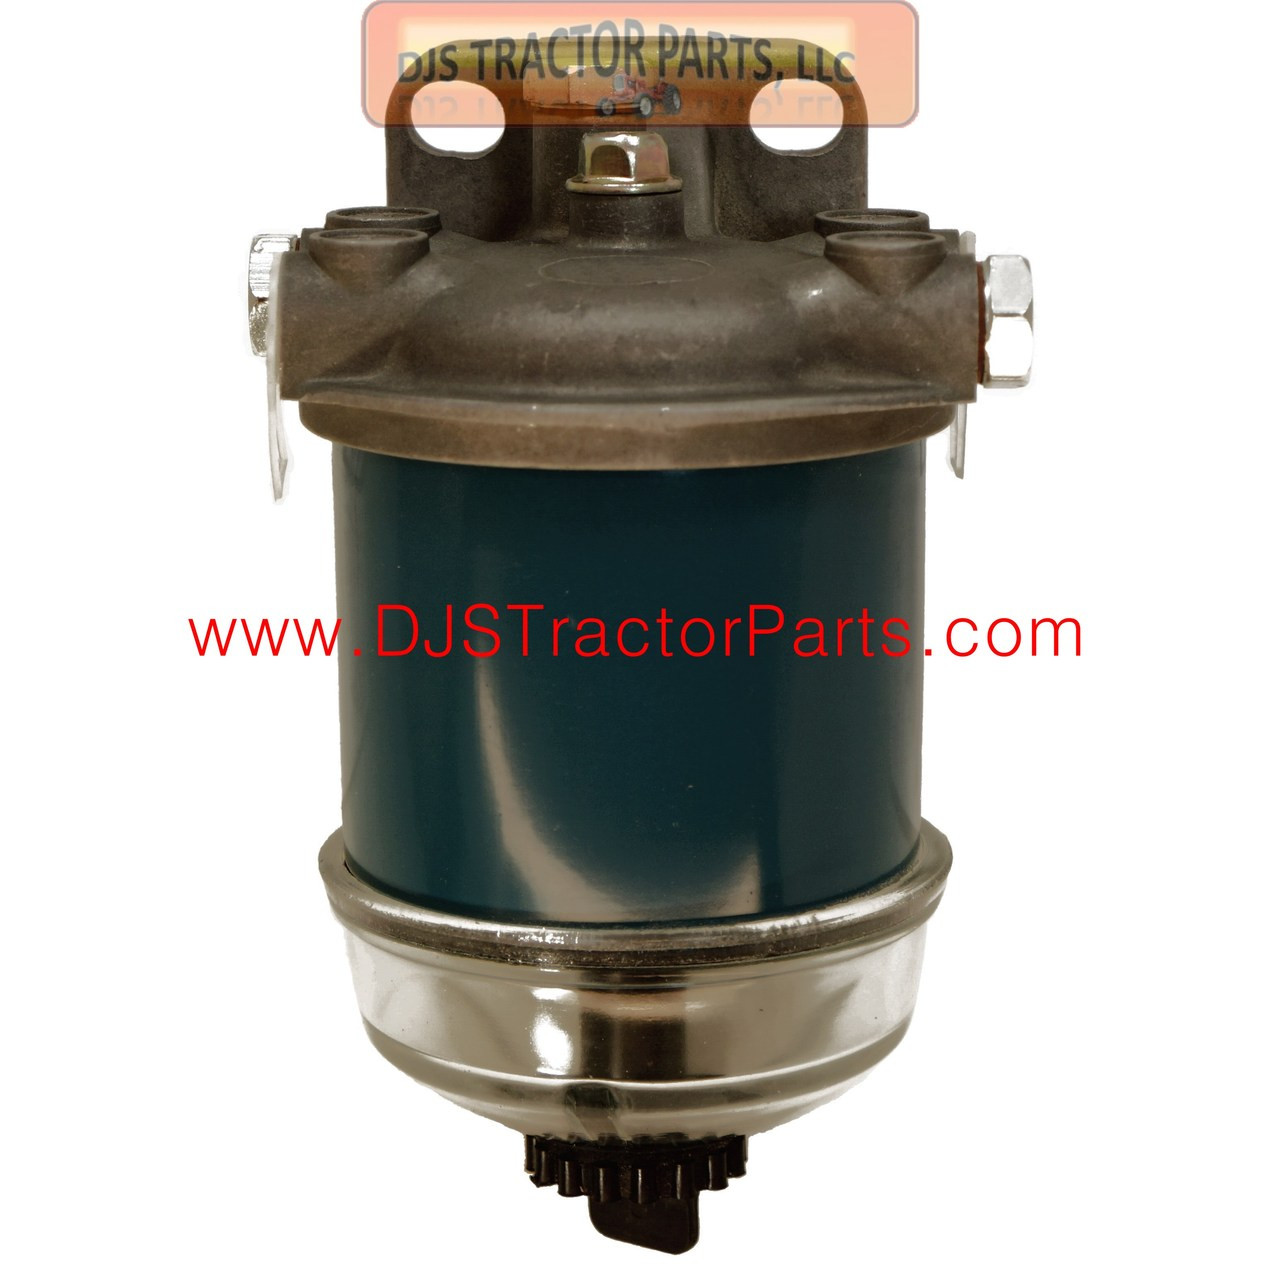 medium resolution of diesel single fuel filter assembly with glass bowl ab 1423d djsdiesel single fuel filter assembly with